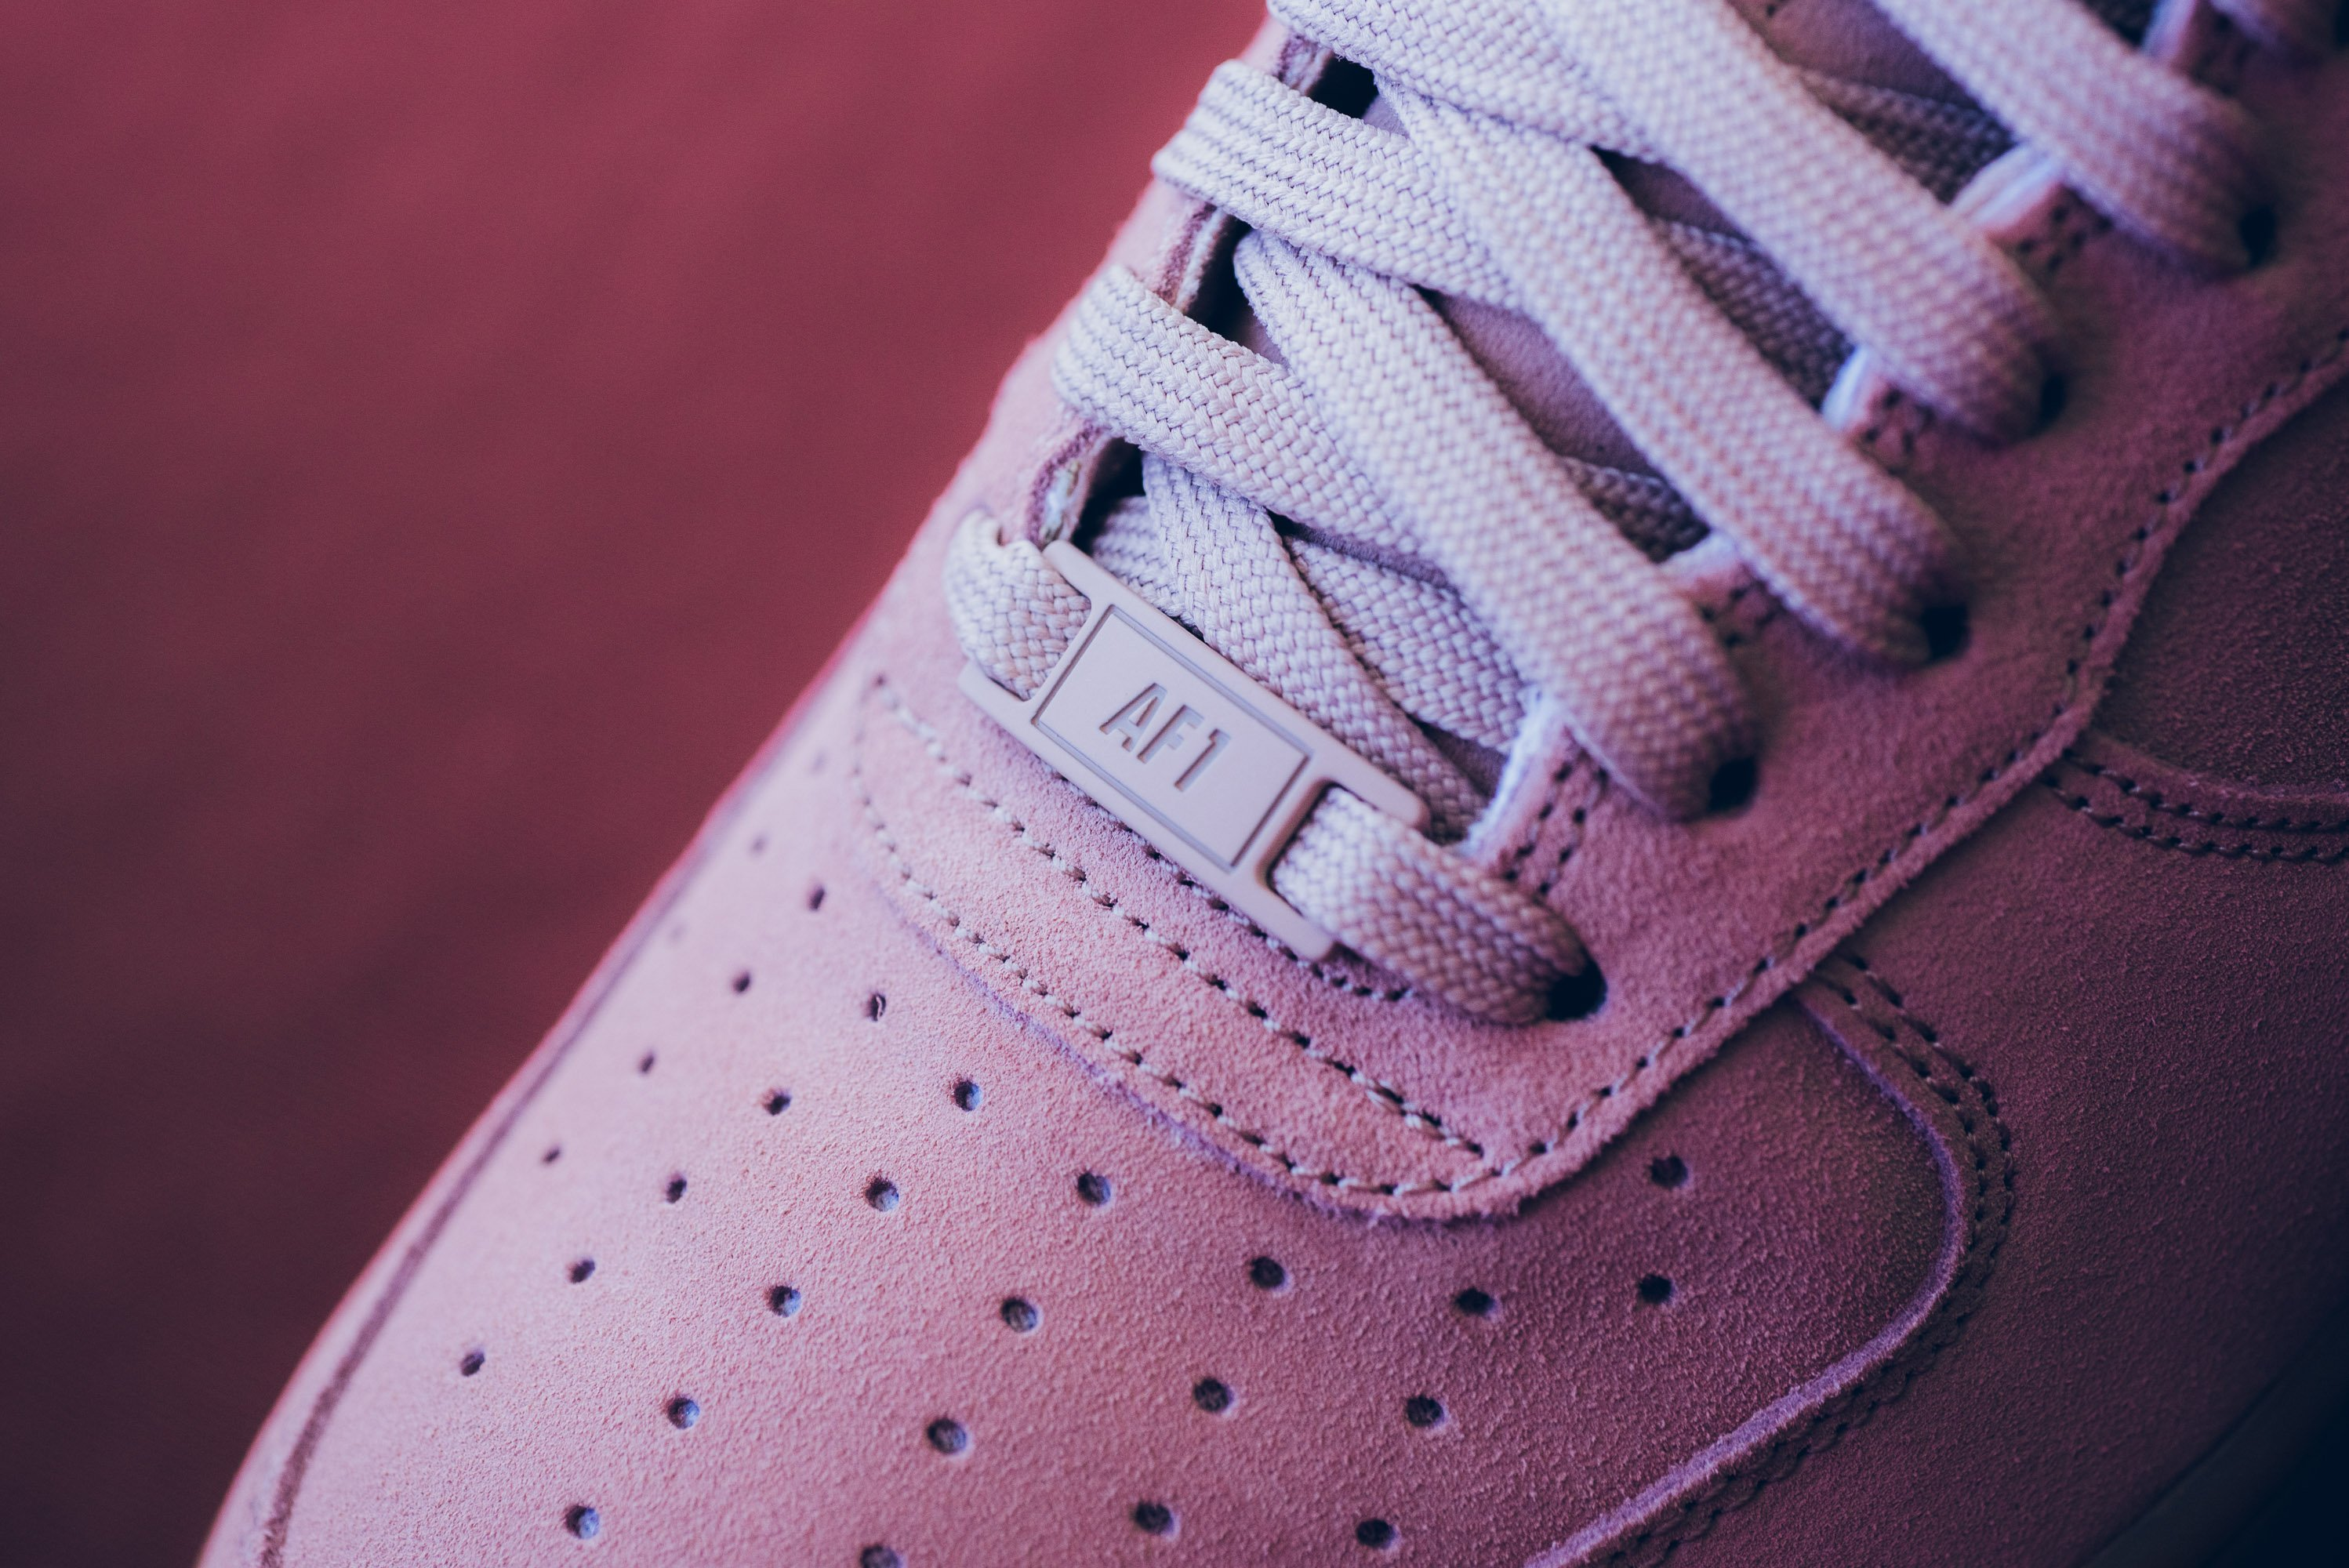 Force Nike Suede Covers 1 Pink Low This Air AL354Rj